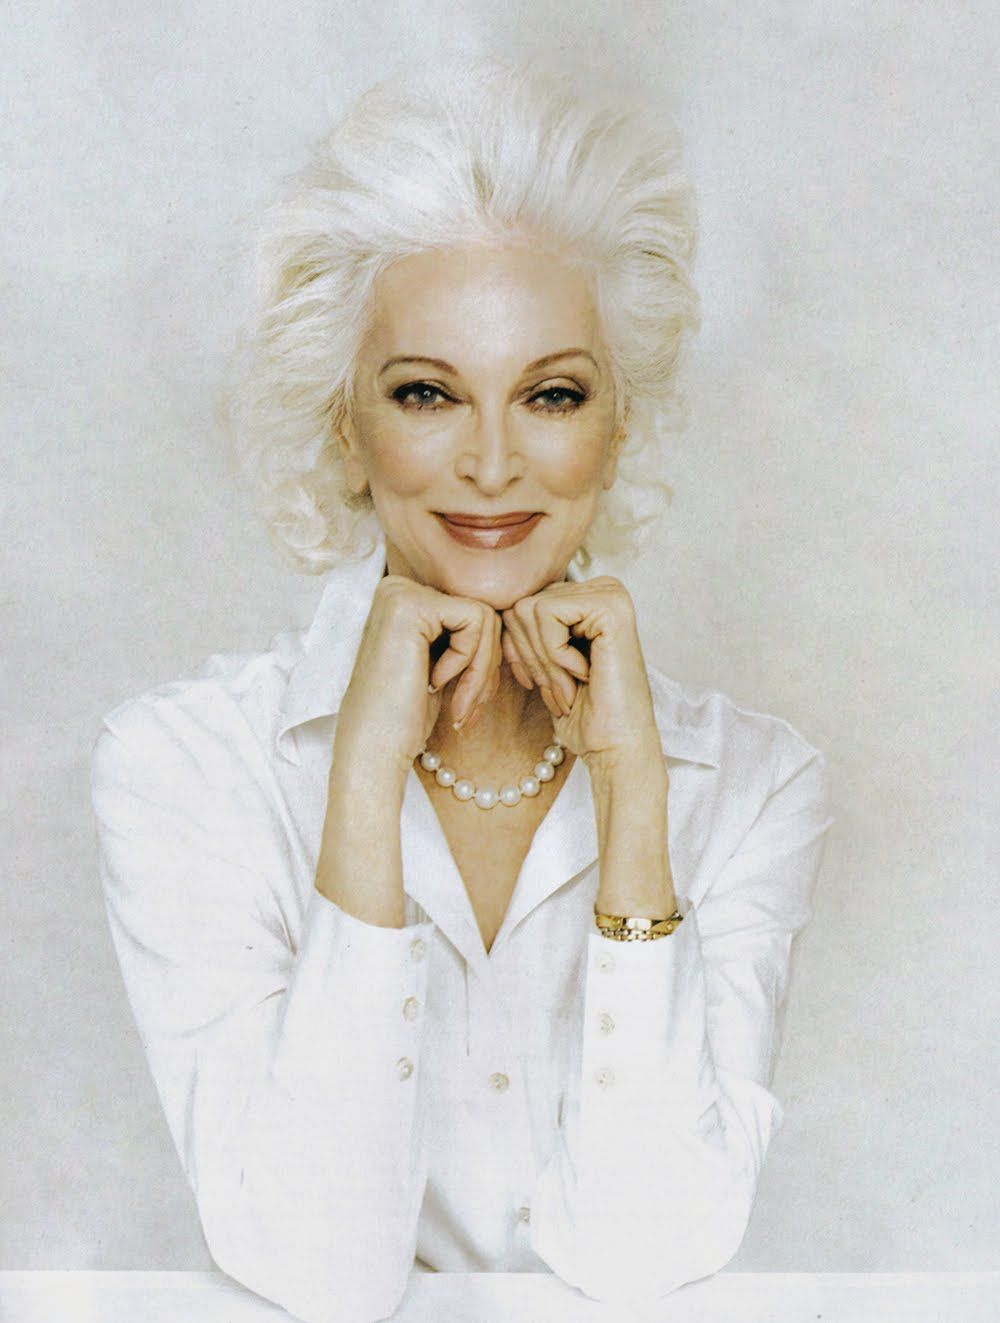 Carmen Dell'Orefice (born June 3, 1931) is 80 years old. She is the oldest model in the world modeling for the last 66 years, placing herself in the Guinness Book of World Records. Kudos to this beautiful woman!